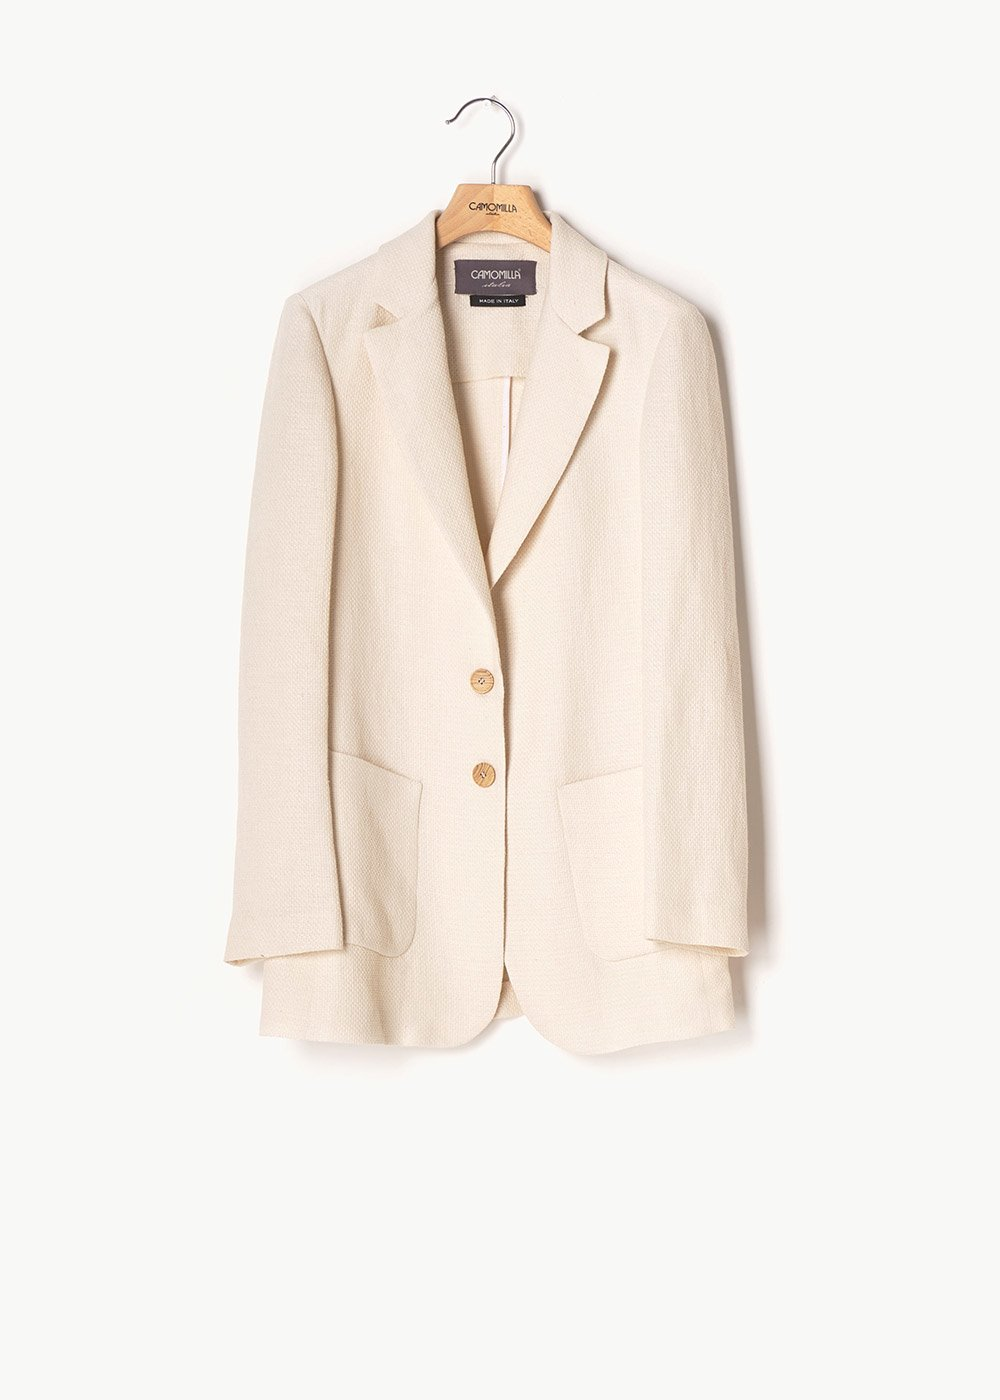 Giuly suit jacket with matting effect - Ginger - Woman